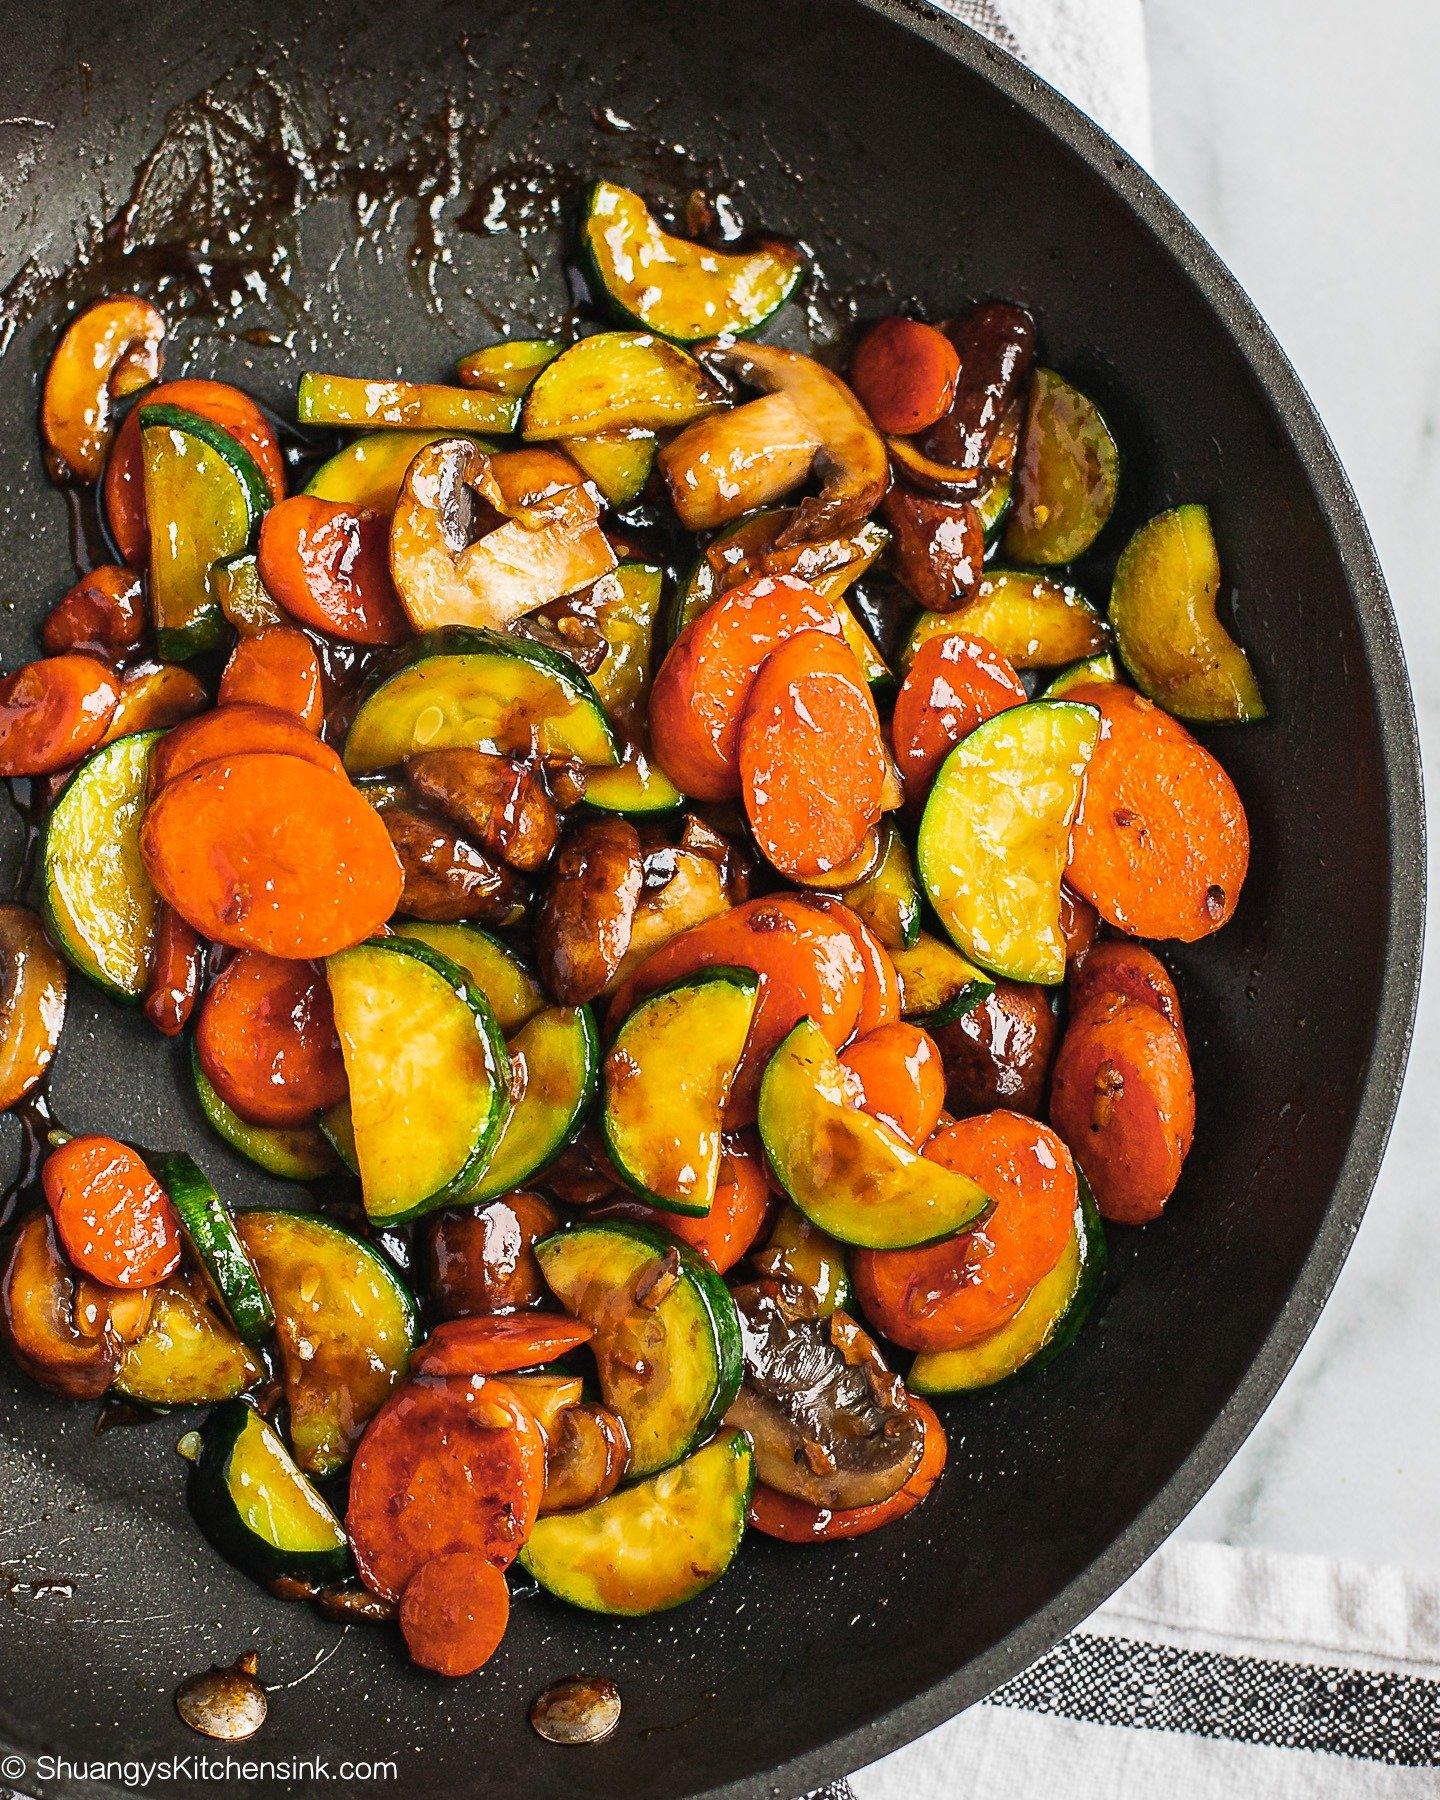 A pan full of mushrooms, carrots and zucchini coated in a a brown sauce.